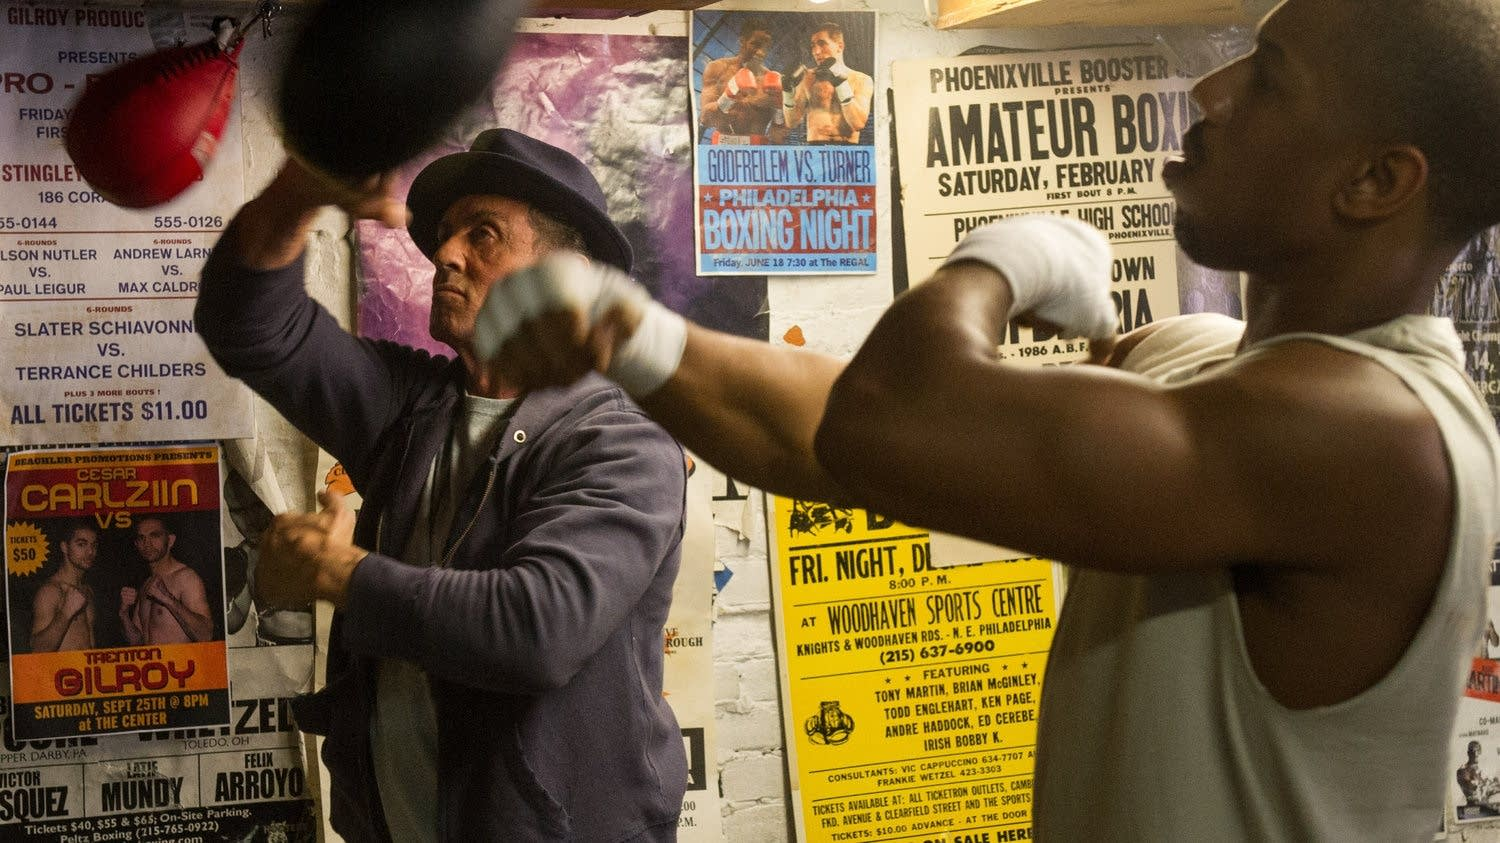 Stylvester Stallone, Michael B. Jordan in 'Creed'